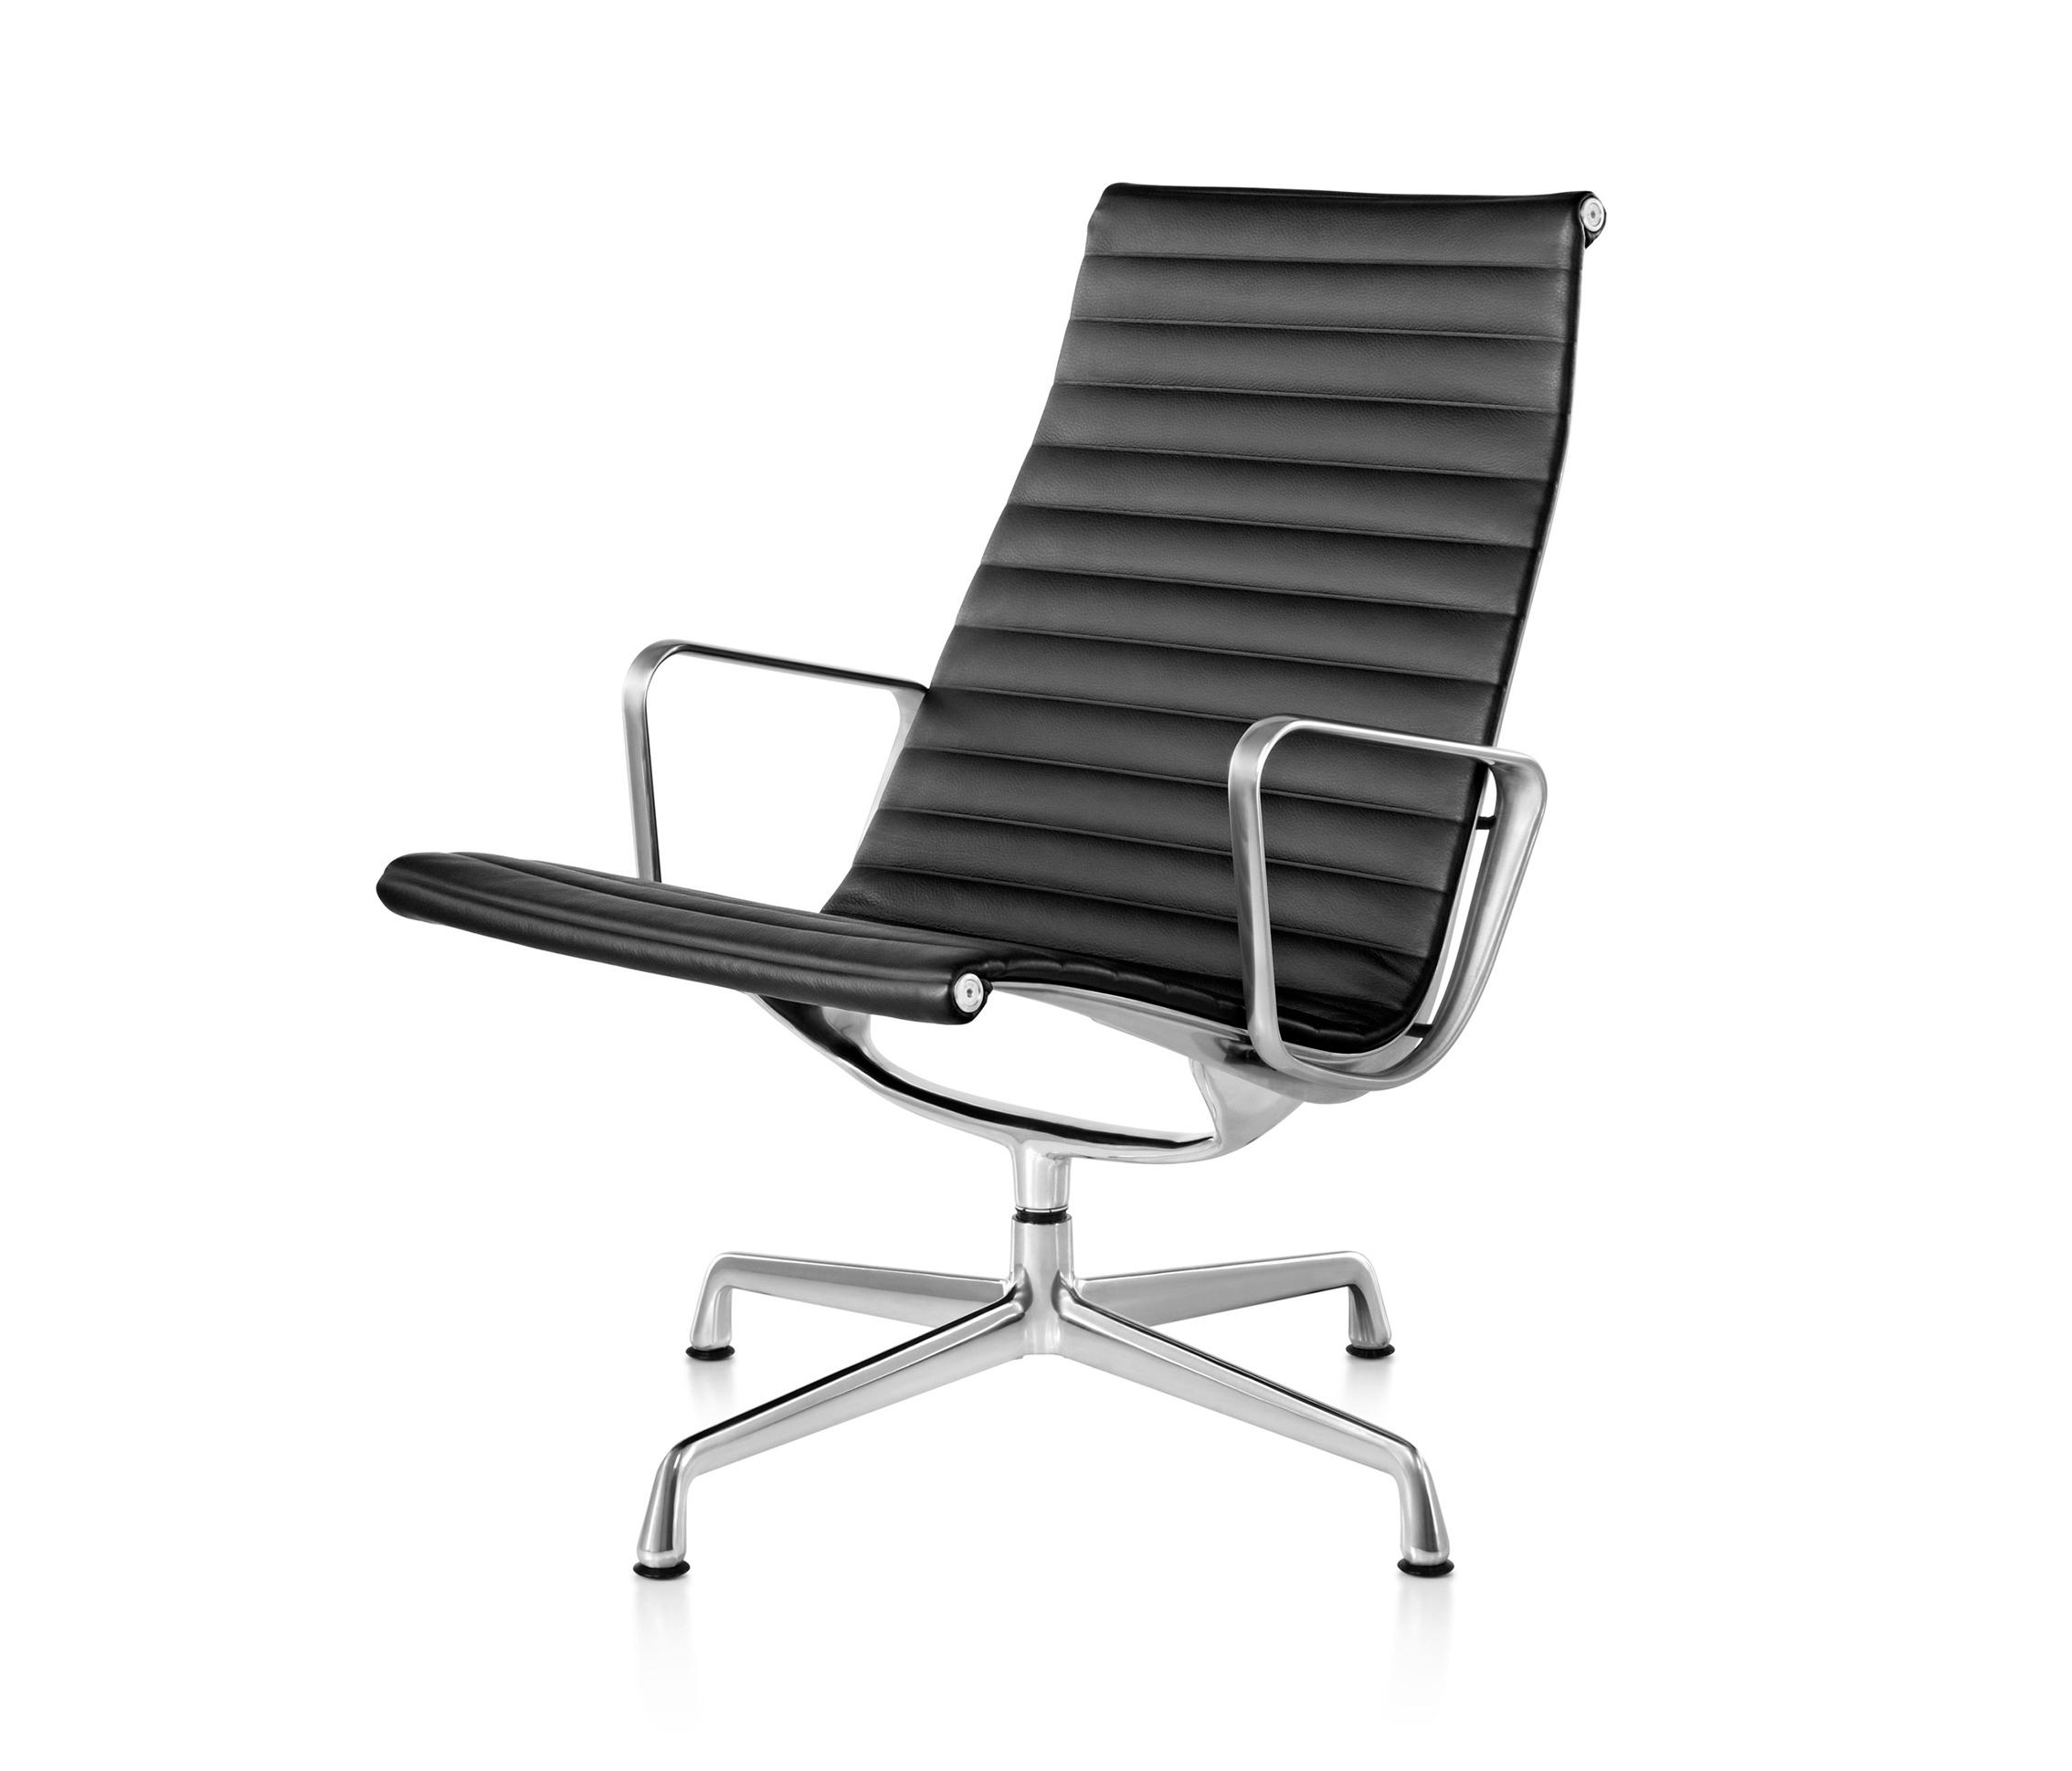 Eames Aluminum Group Lounge Chair Armchairs From Herman